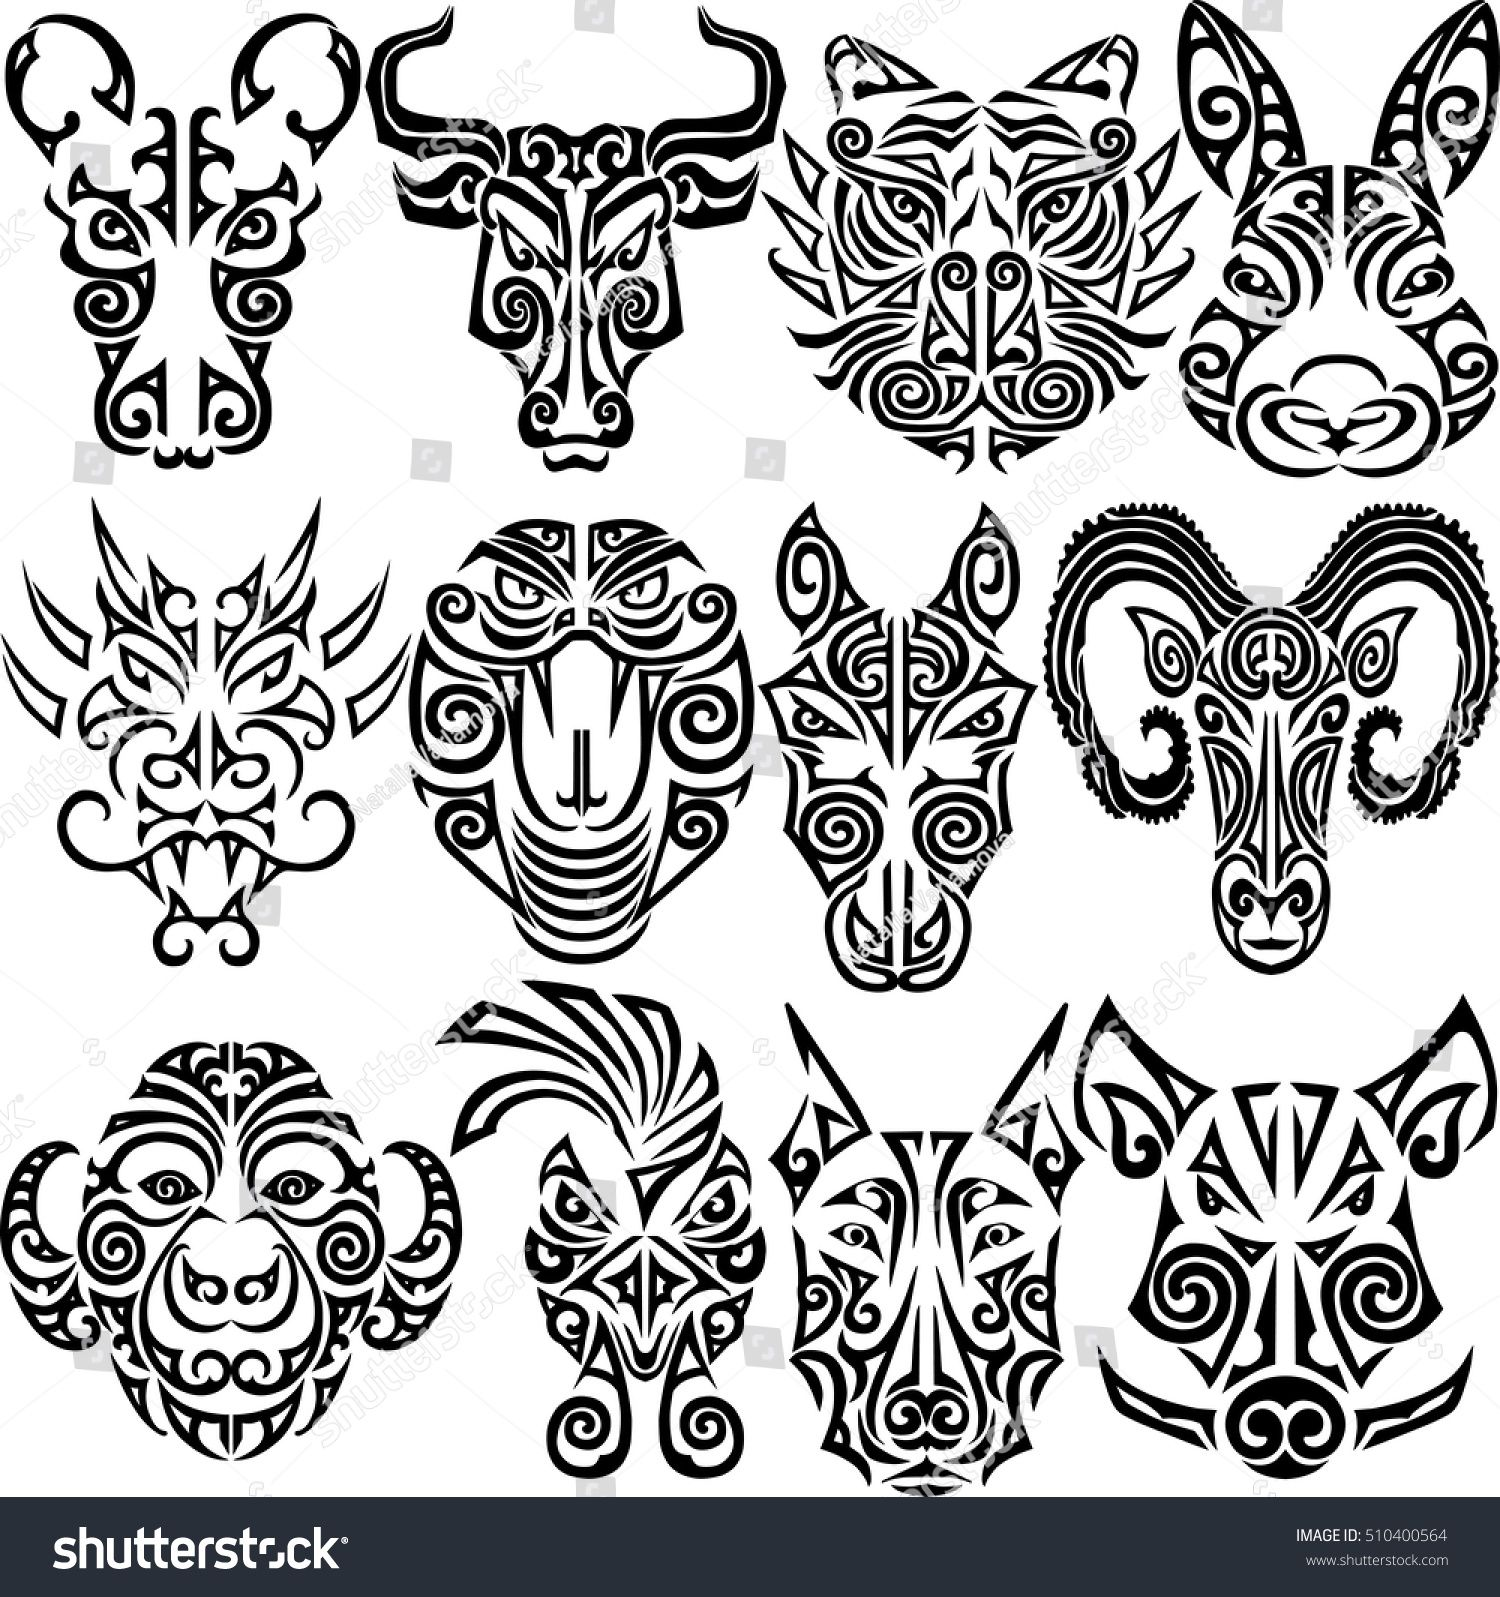 Chinese Zodiac Signs Set Rat Ox Bull Tiger Rabbit Dragon Snake Horse Ram Monkey Rooster Dog Boar Chinese Zodiac Tattoo Maori Tattoo Rooster Tattoo